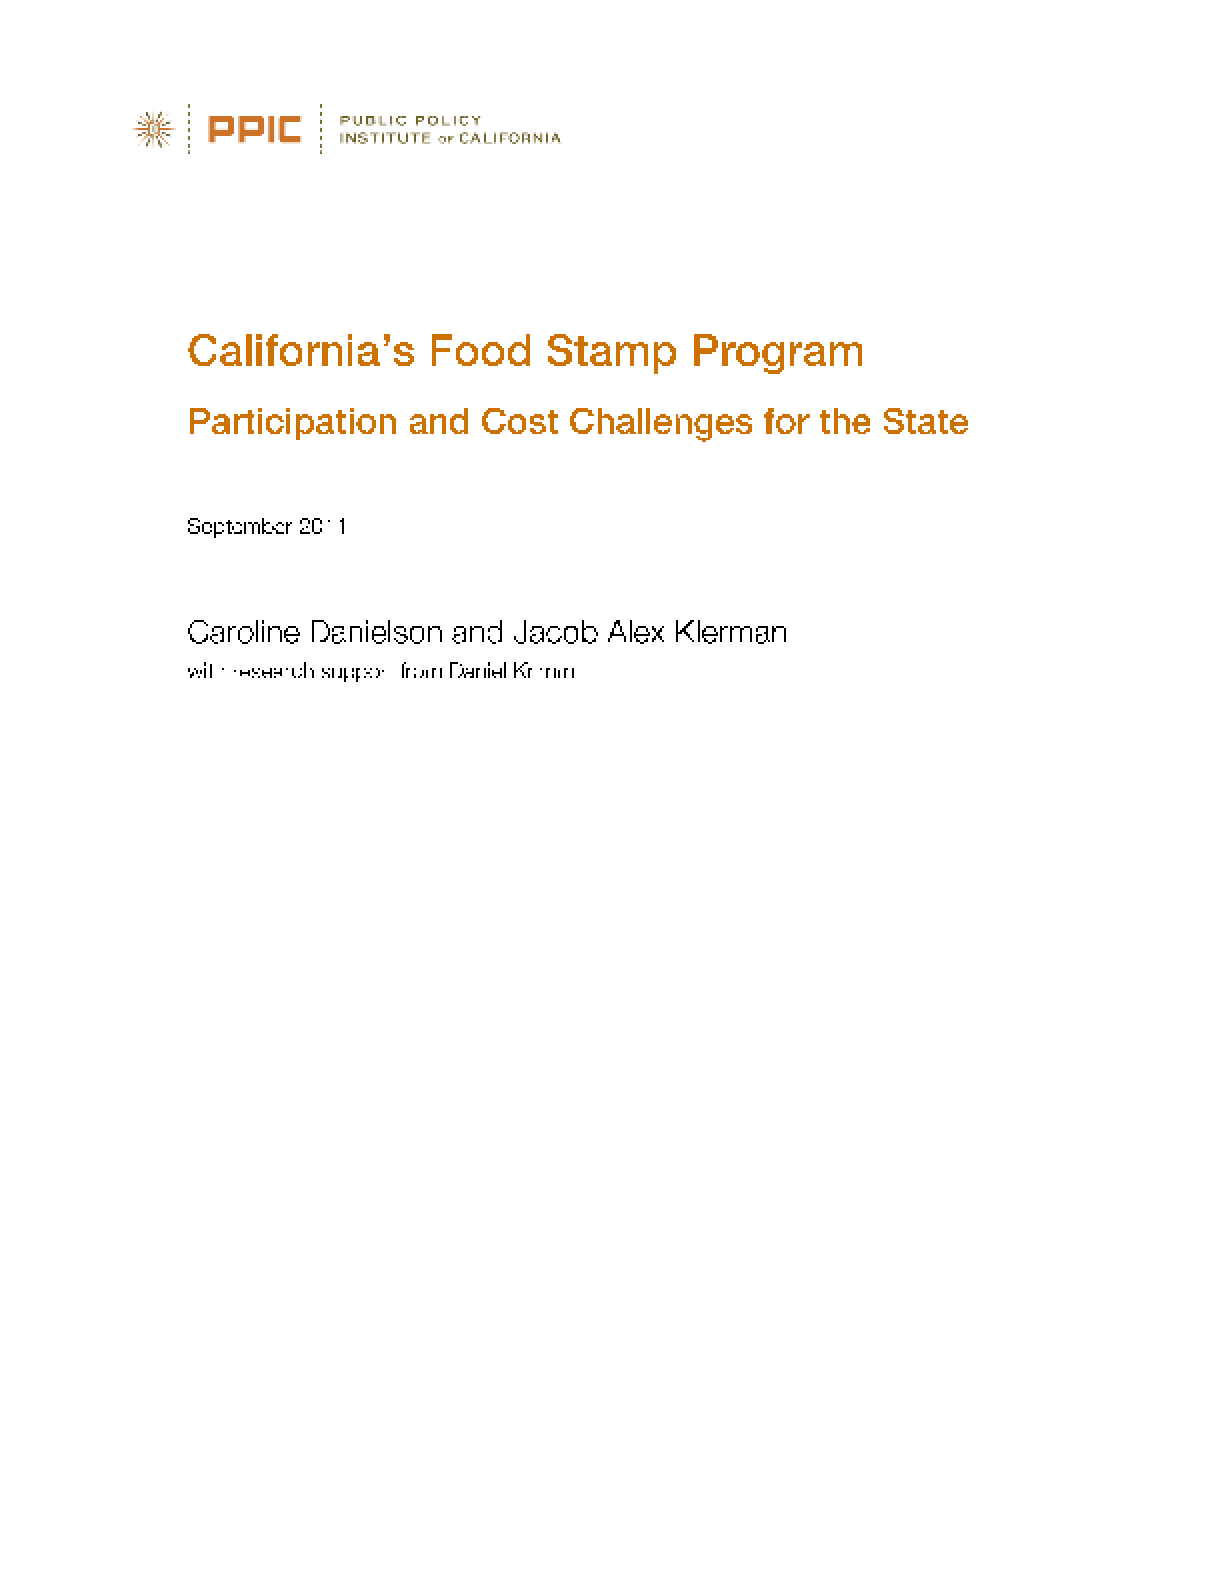 California's Food Stamp Program: Participation and Cost Challenges for the State